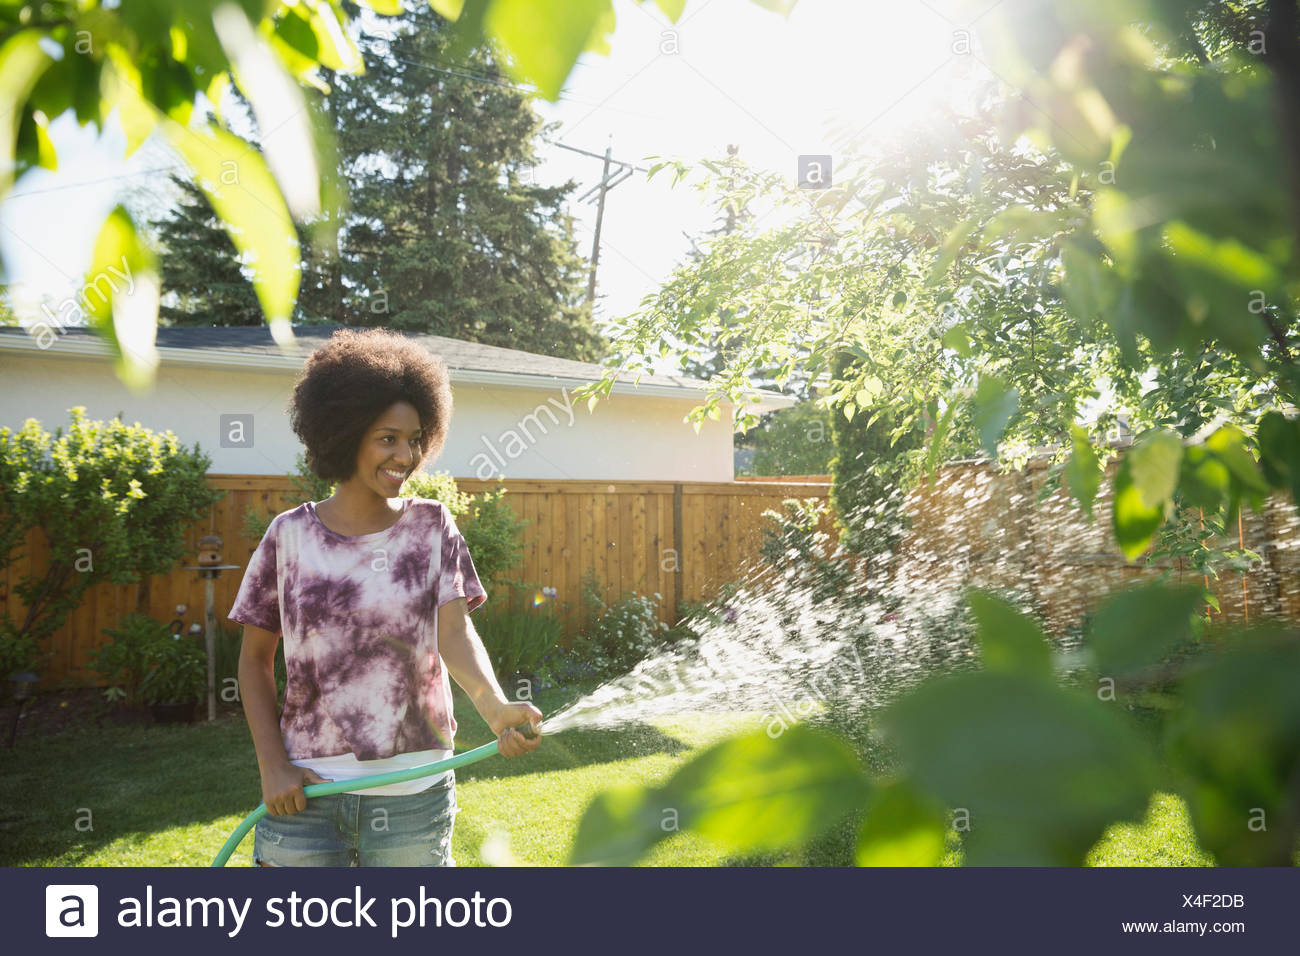 Woman watering garden in sunny backyard - Stock Image